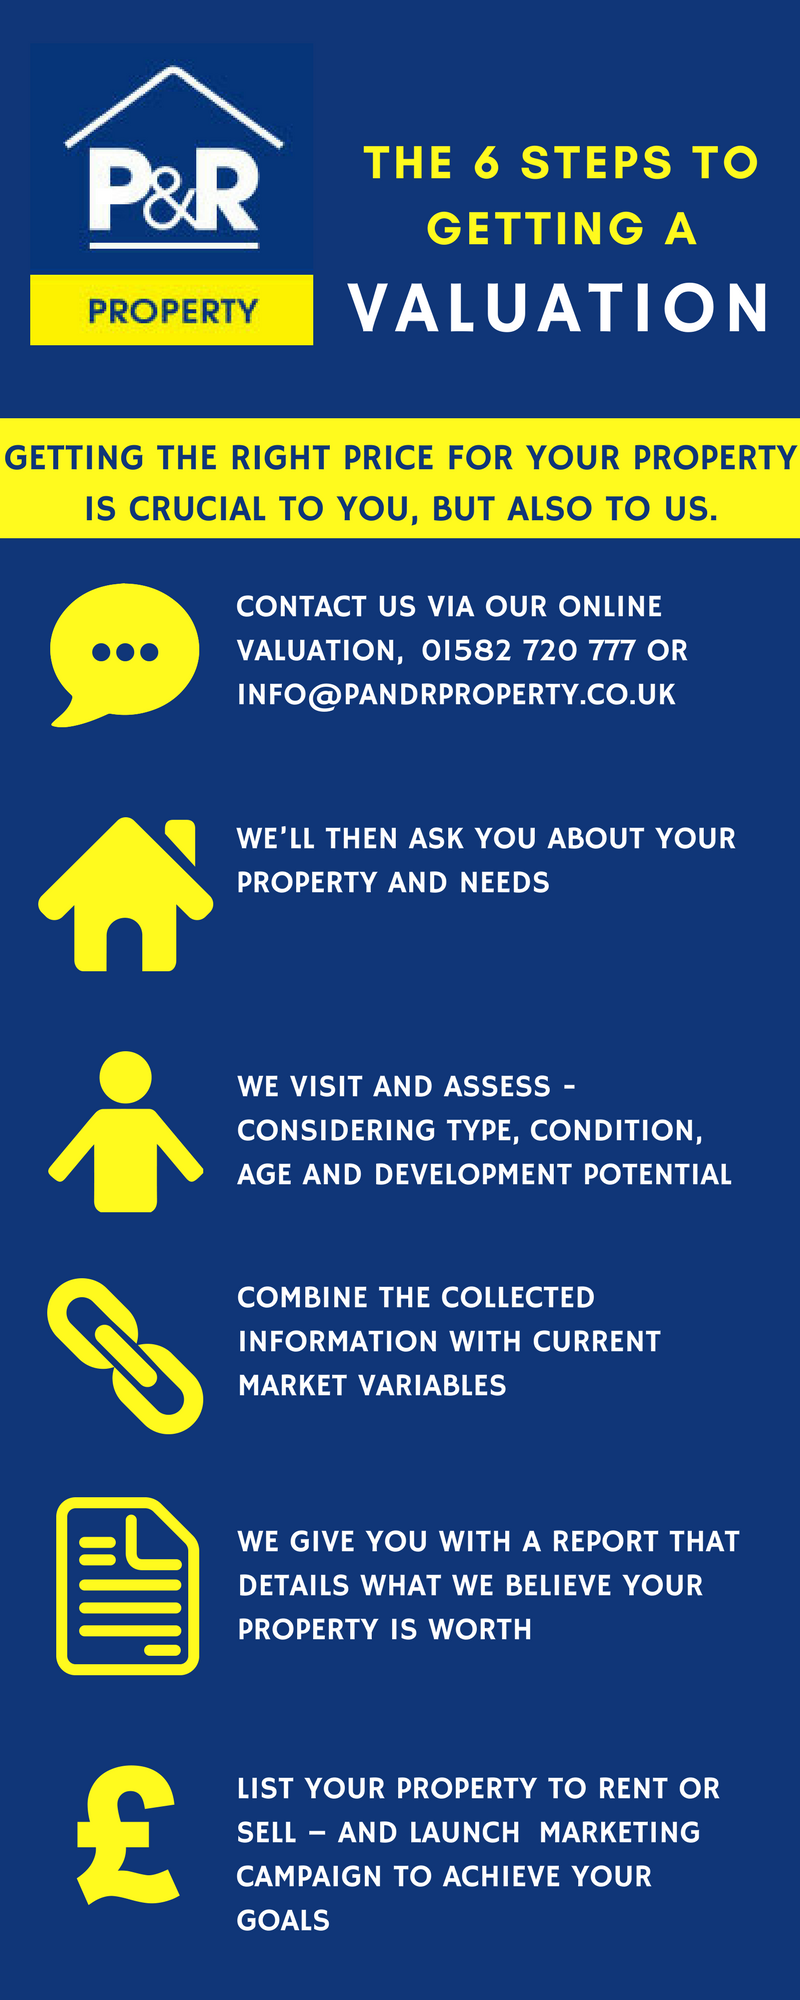 How To Get A Property Valuation